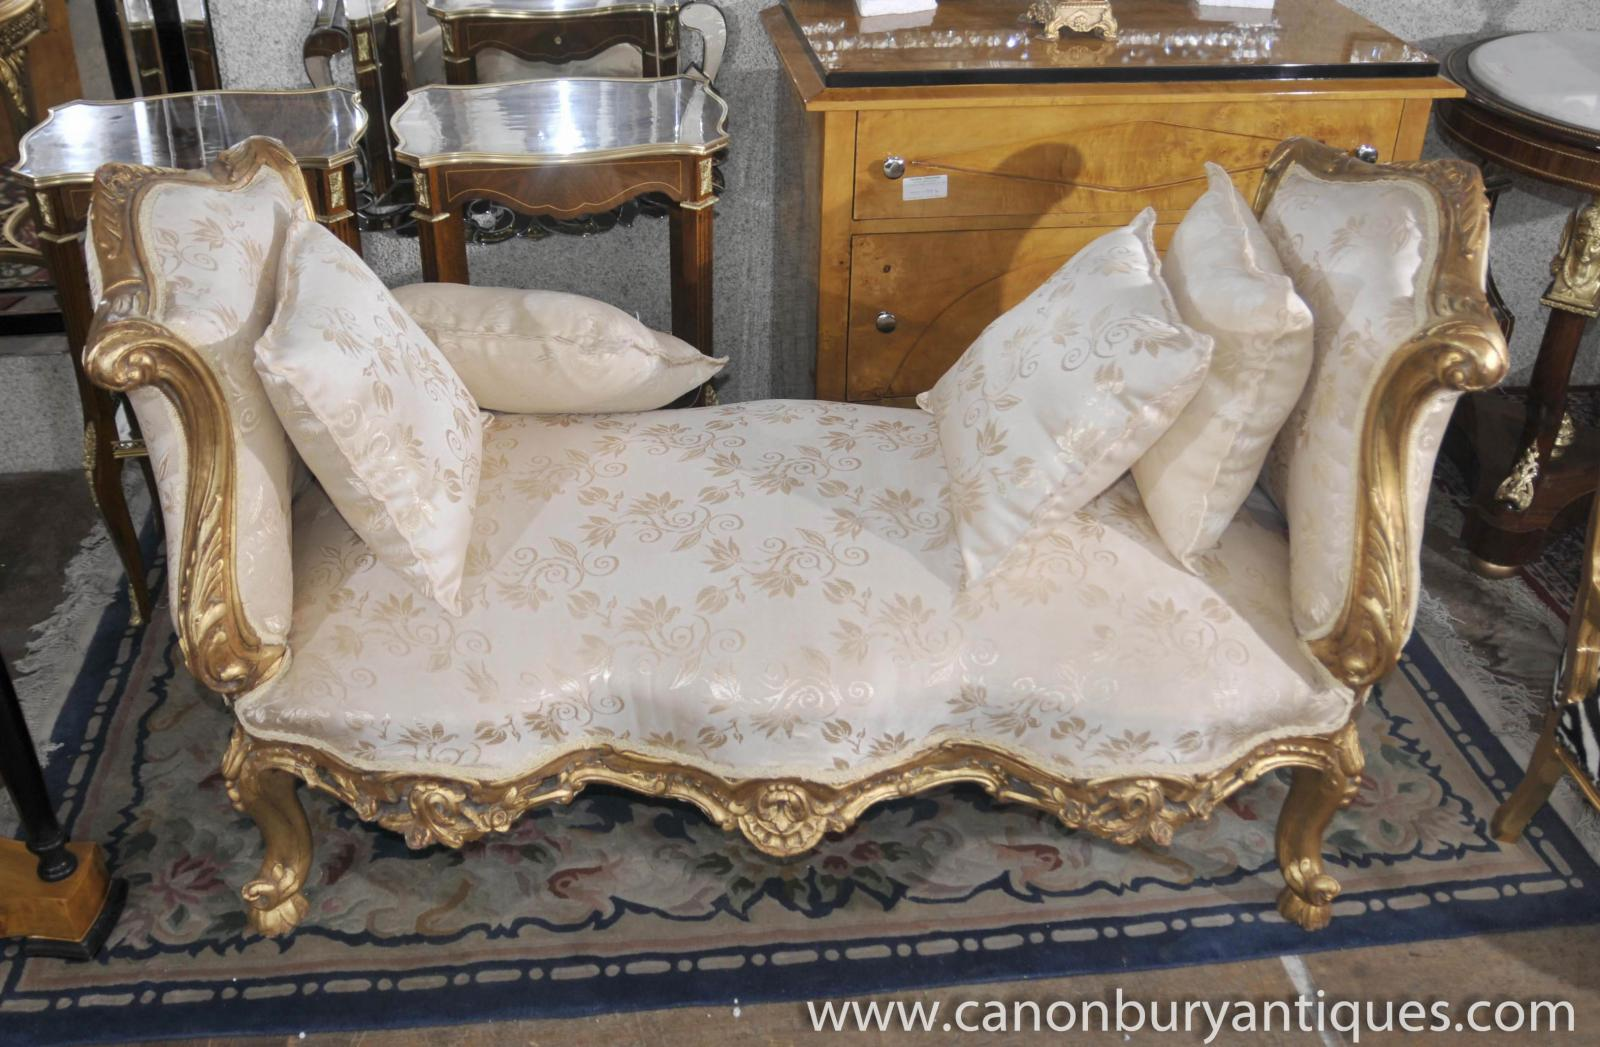 French louis xv sofa day bed chaise lounge longue chair ebay for Chaise longue sofa bed ebay